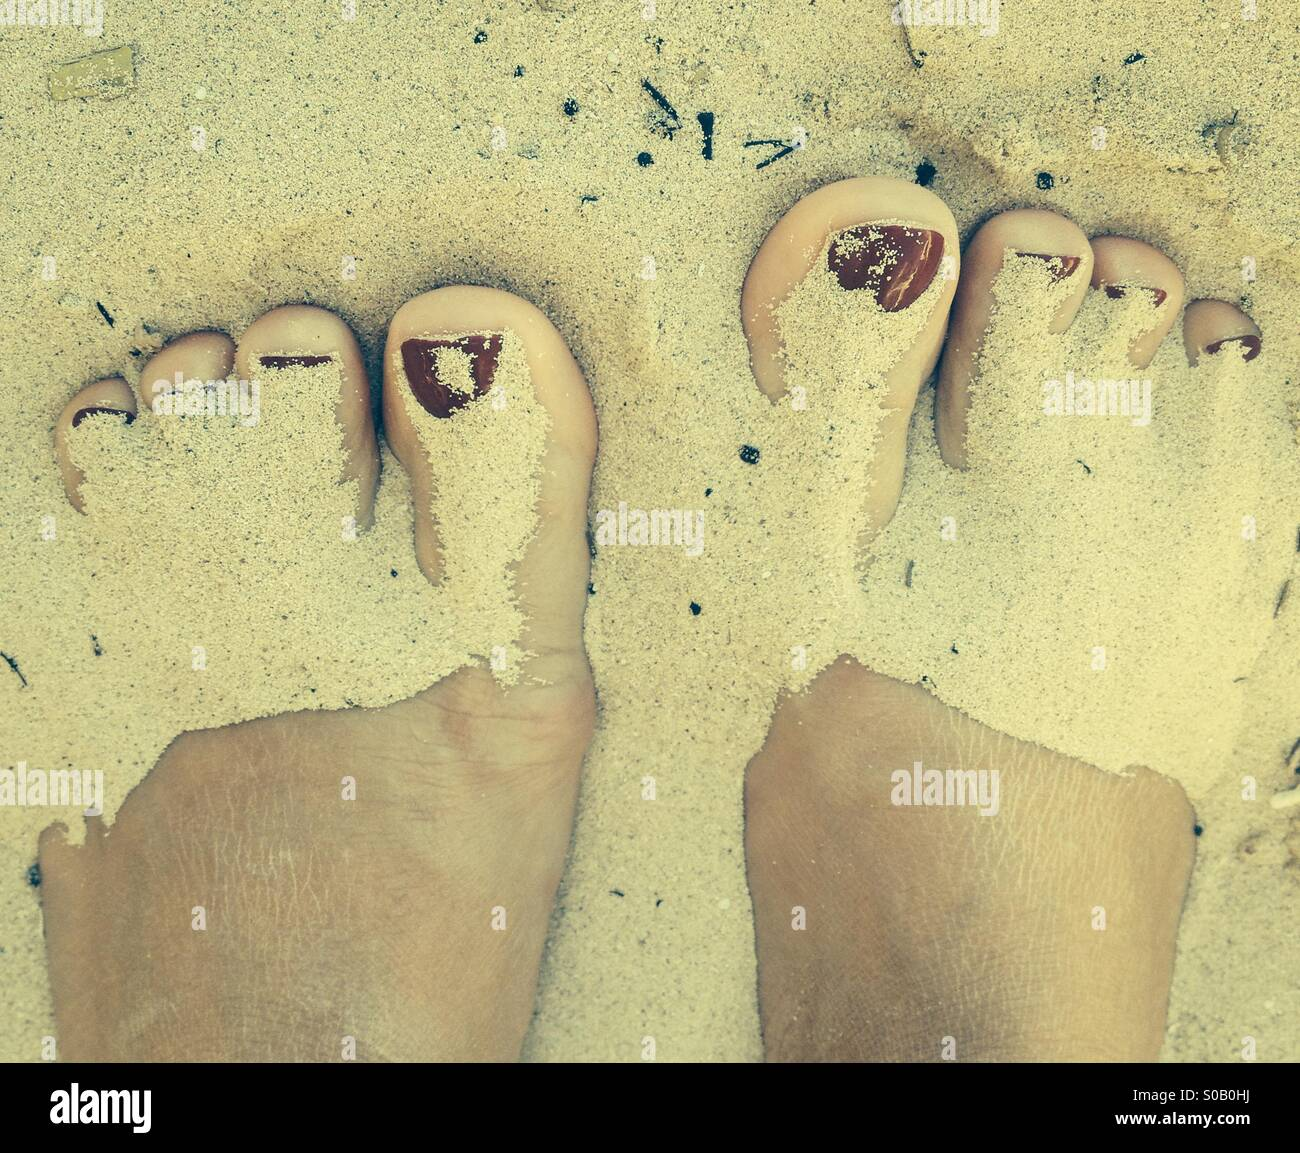 Feet in sand - Stock Image